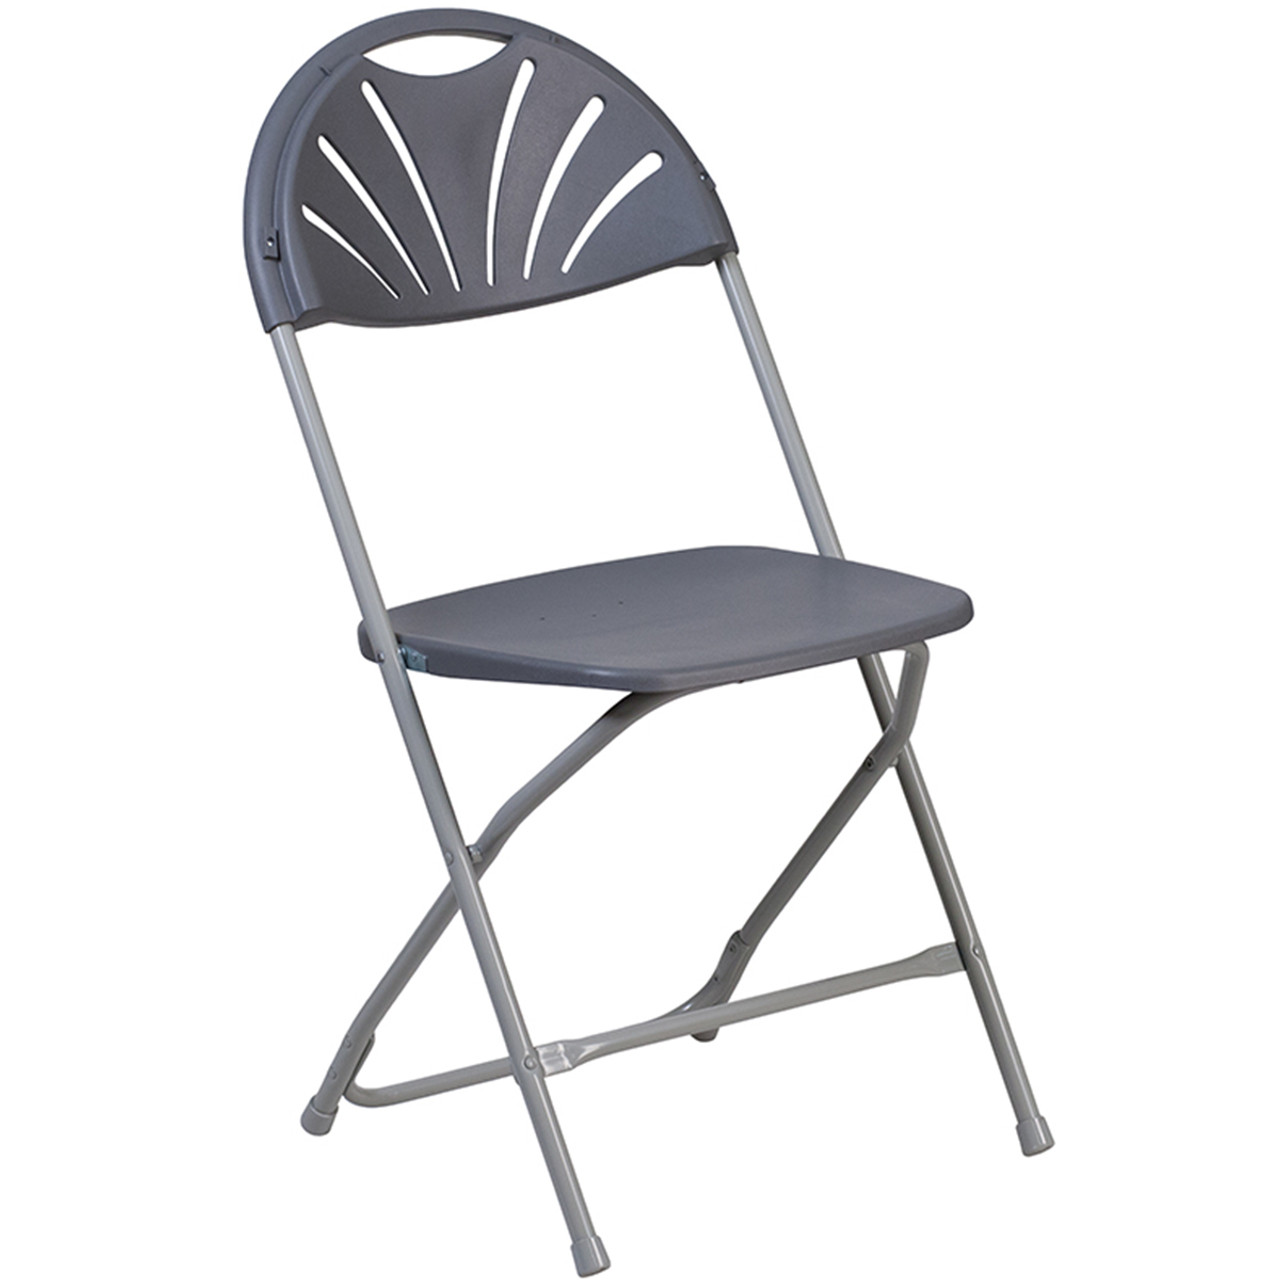 Lightweight Gray Fan Back Plastic Folding Chairs Foldable Chairs